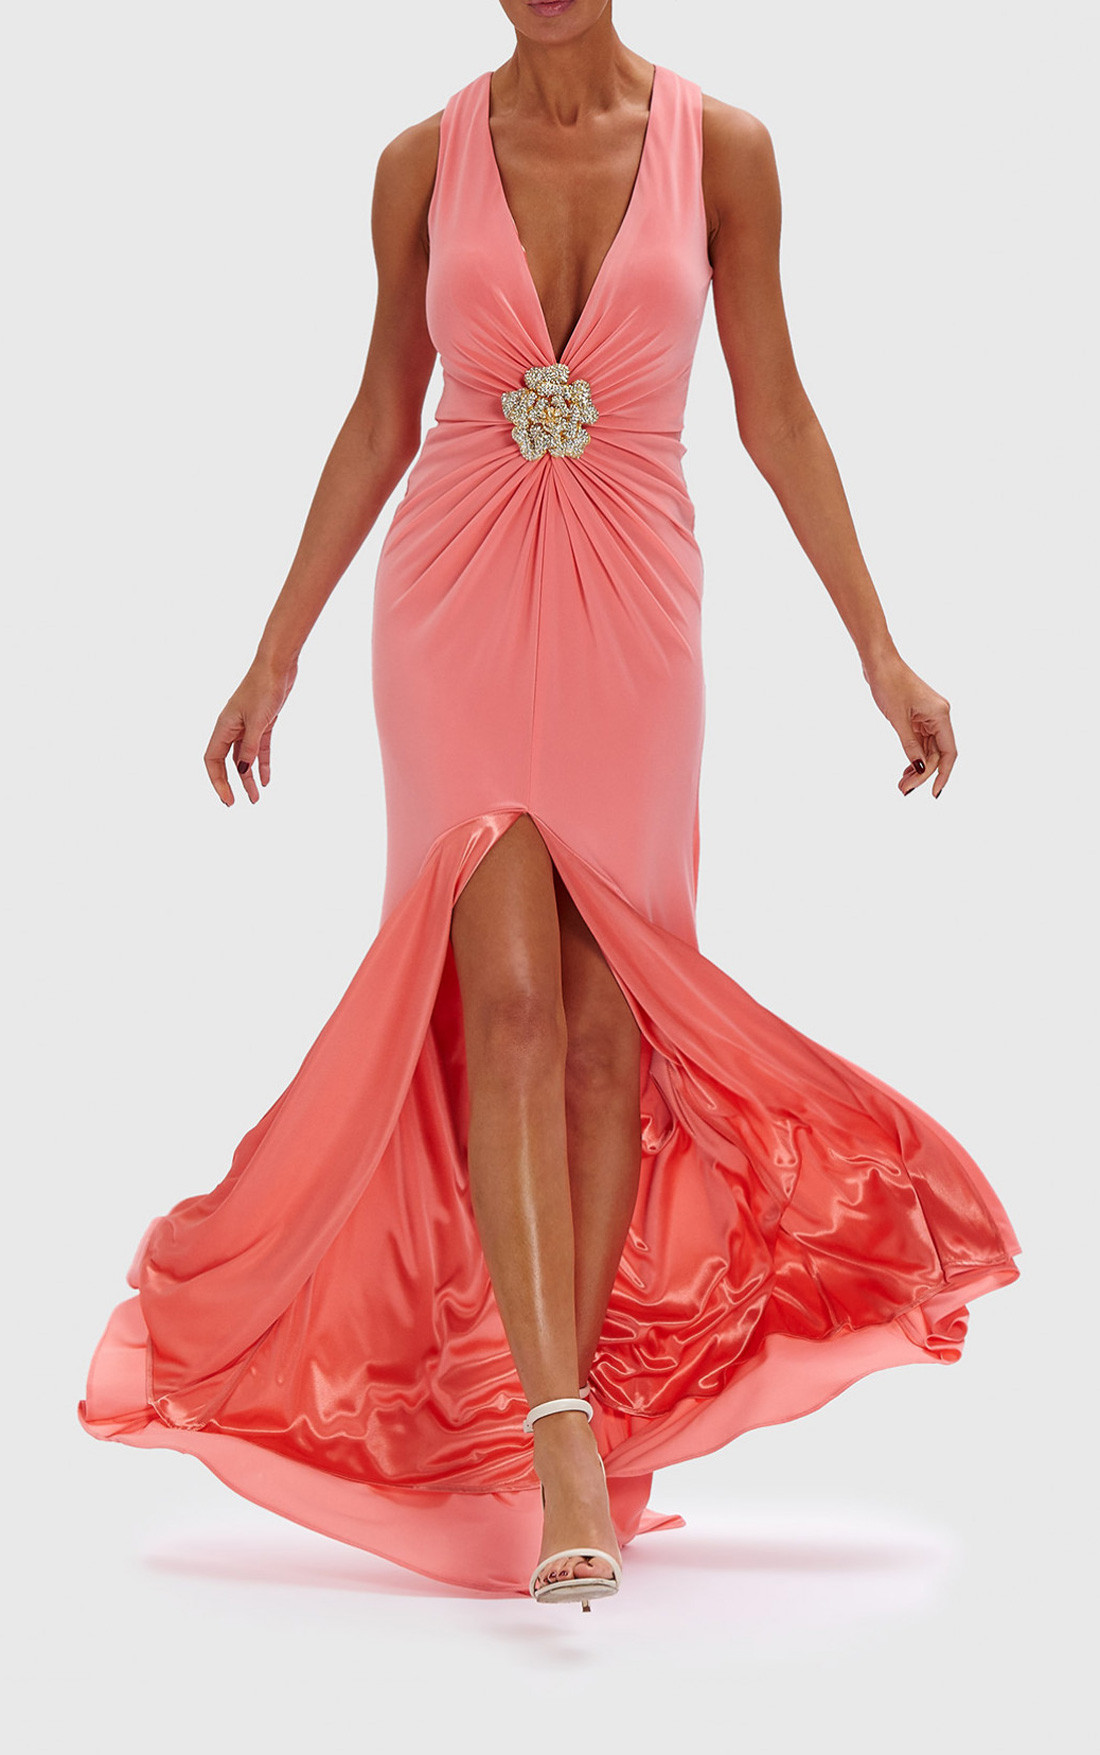 Forever Unique - Jeannie Peach Gown With Diamante Brooch (AB0921)